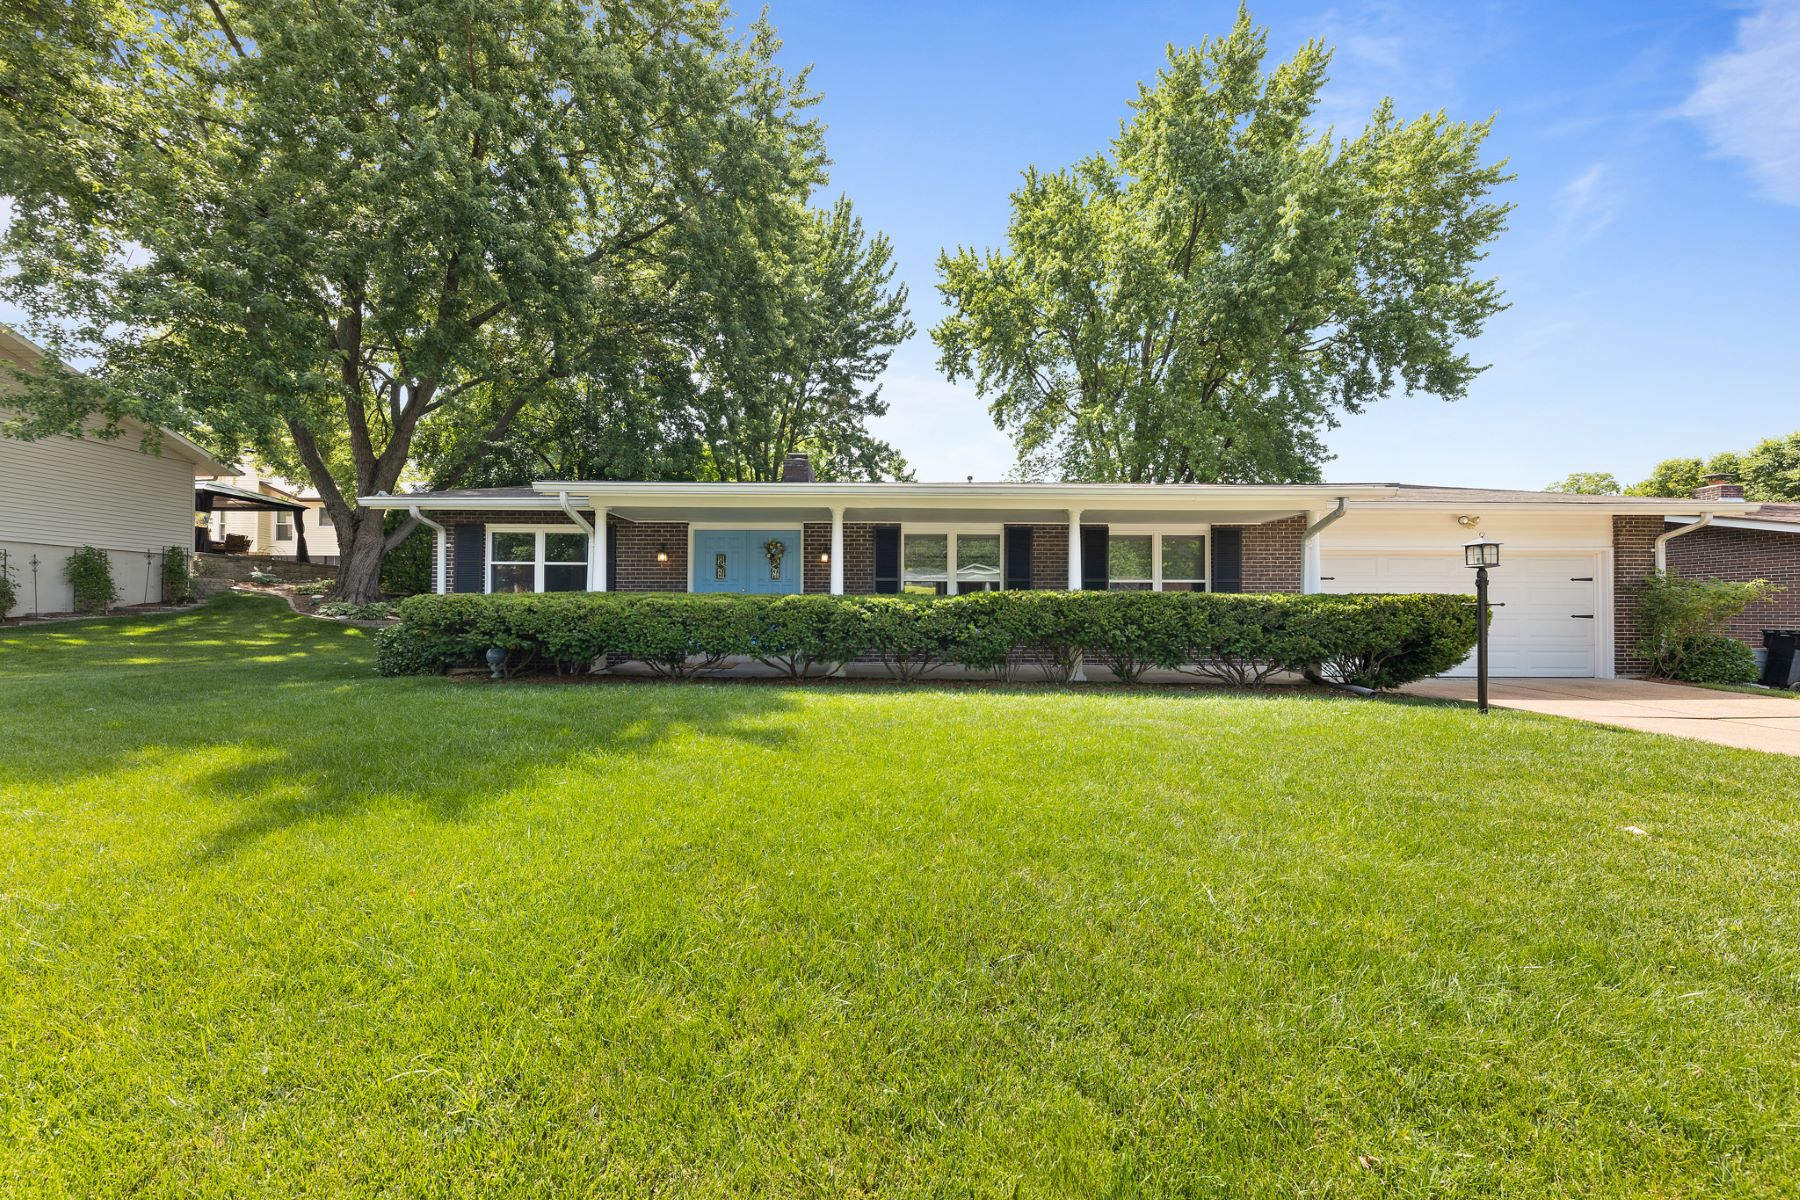 Single Family Home for Sale at Updated Open Floor Plan 11574 Patty Ann Drive St. Louis, Missouri 63146 United States